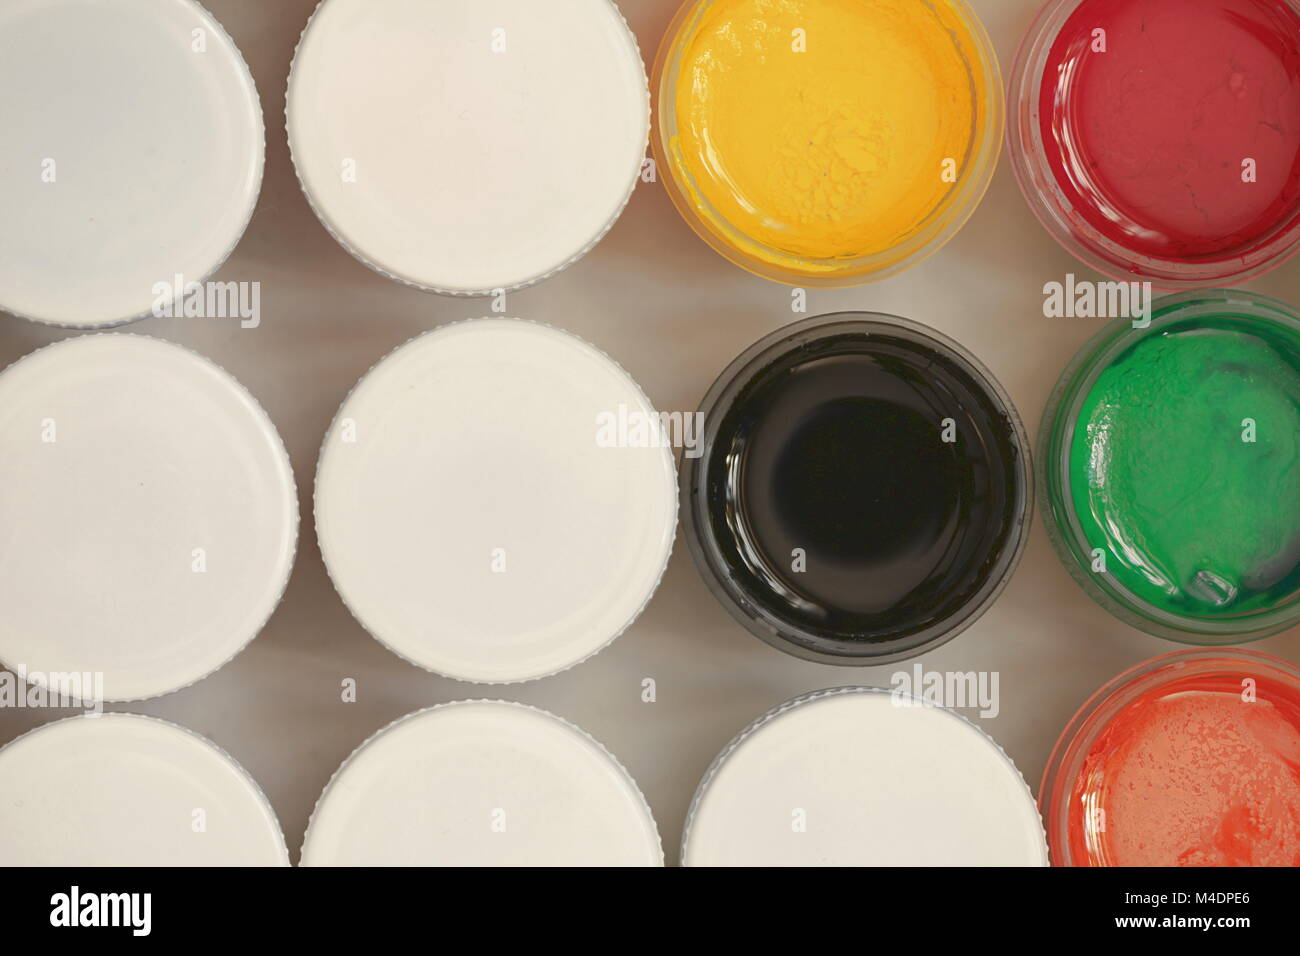 Colorful Gouache set of artistic cans - Stock Image